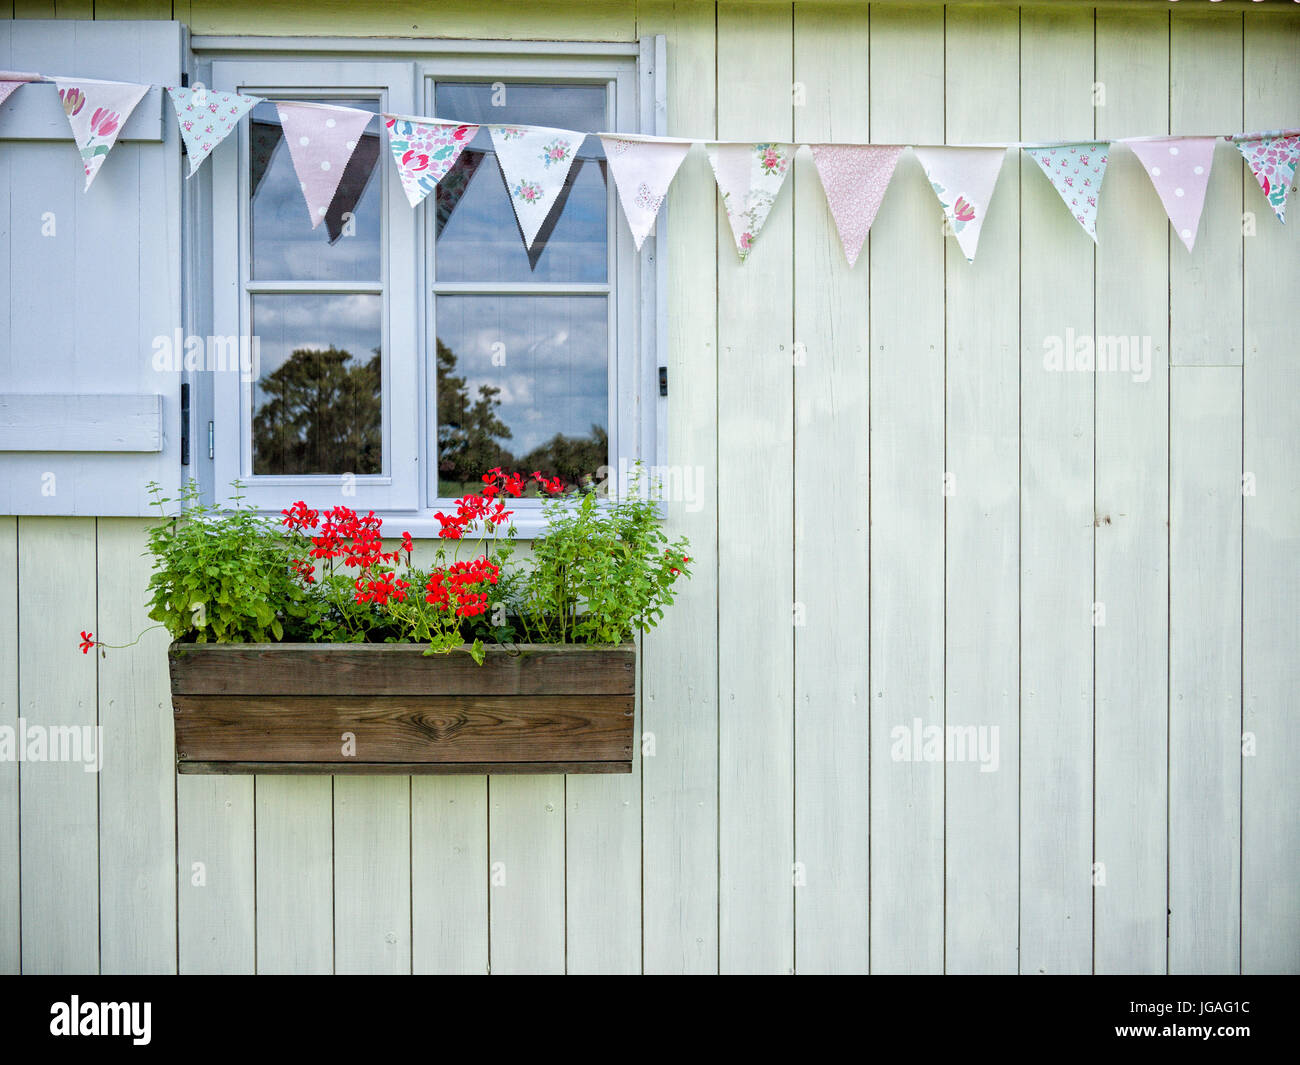 A pretty window on a wooden shed with bunting and flowers in a window box - Stock Image